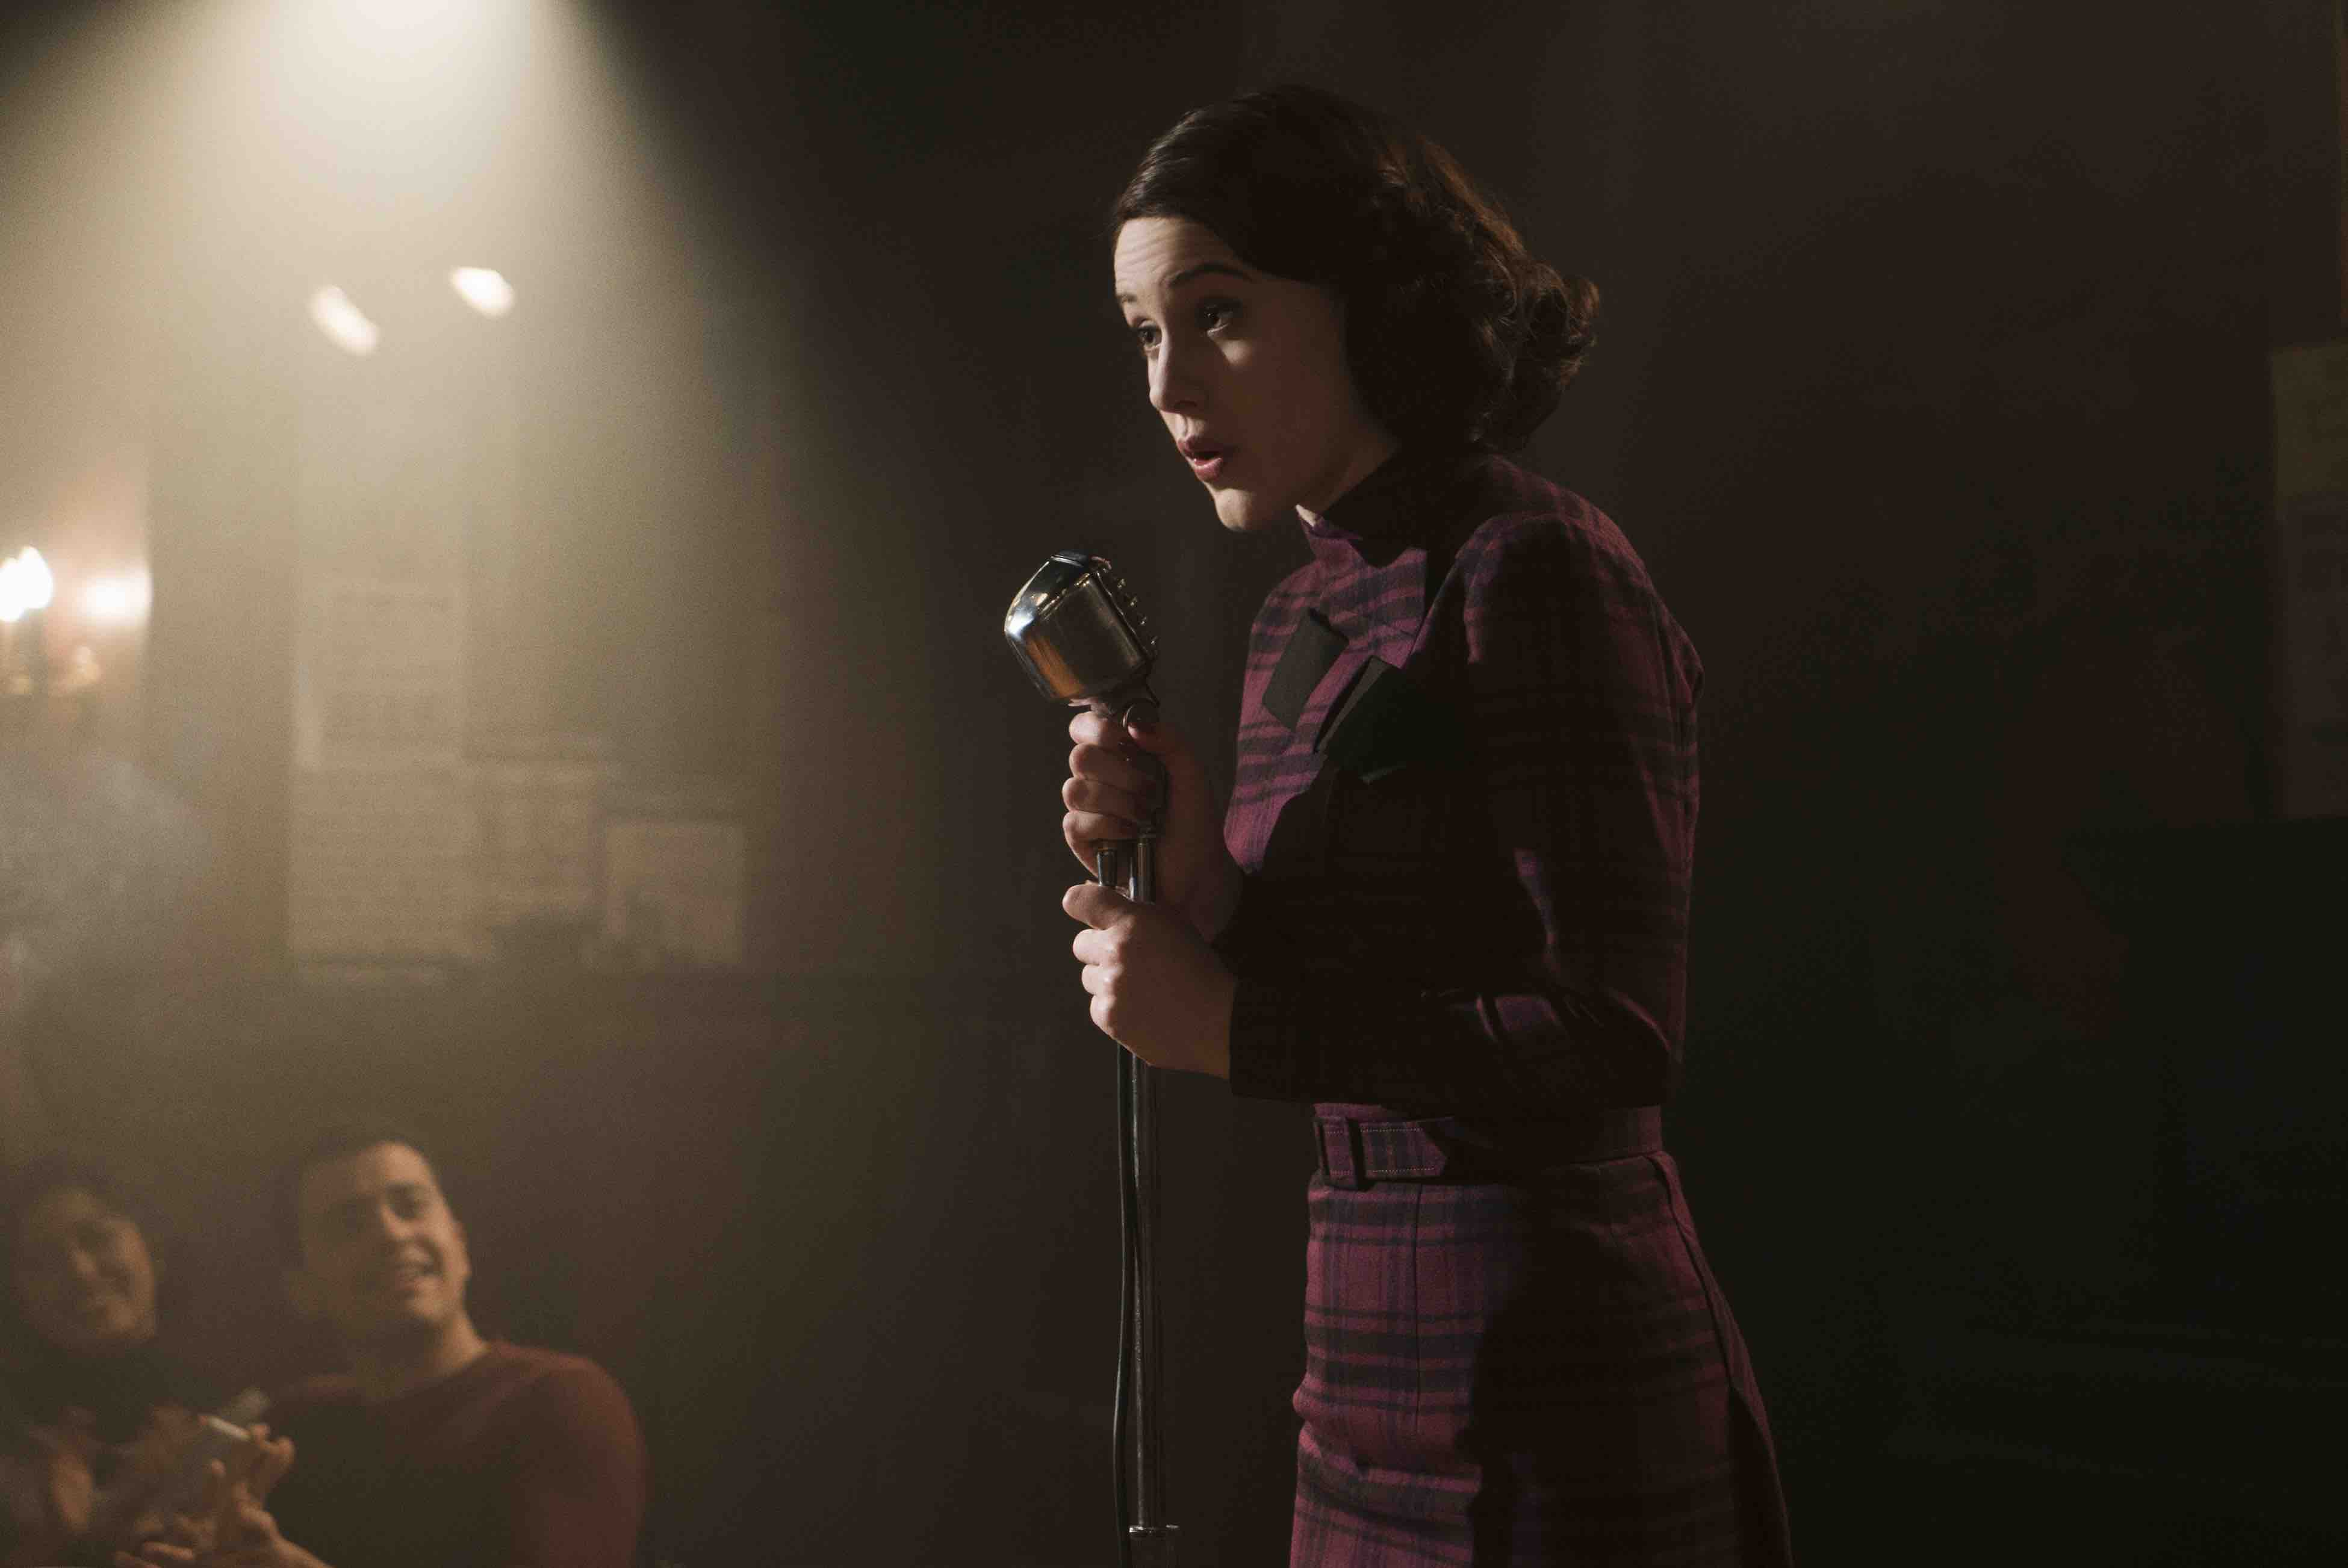 LightWorkers 'The Marvelous Mrs. Maisel': Why Amy Sherman-Palladino's Series is the Solution Hollywood Needs.